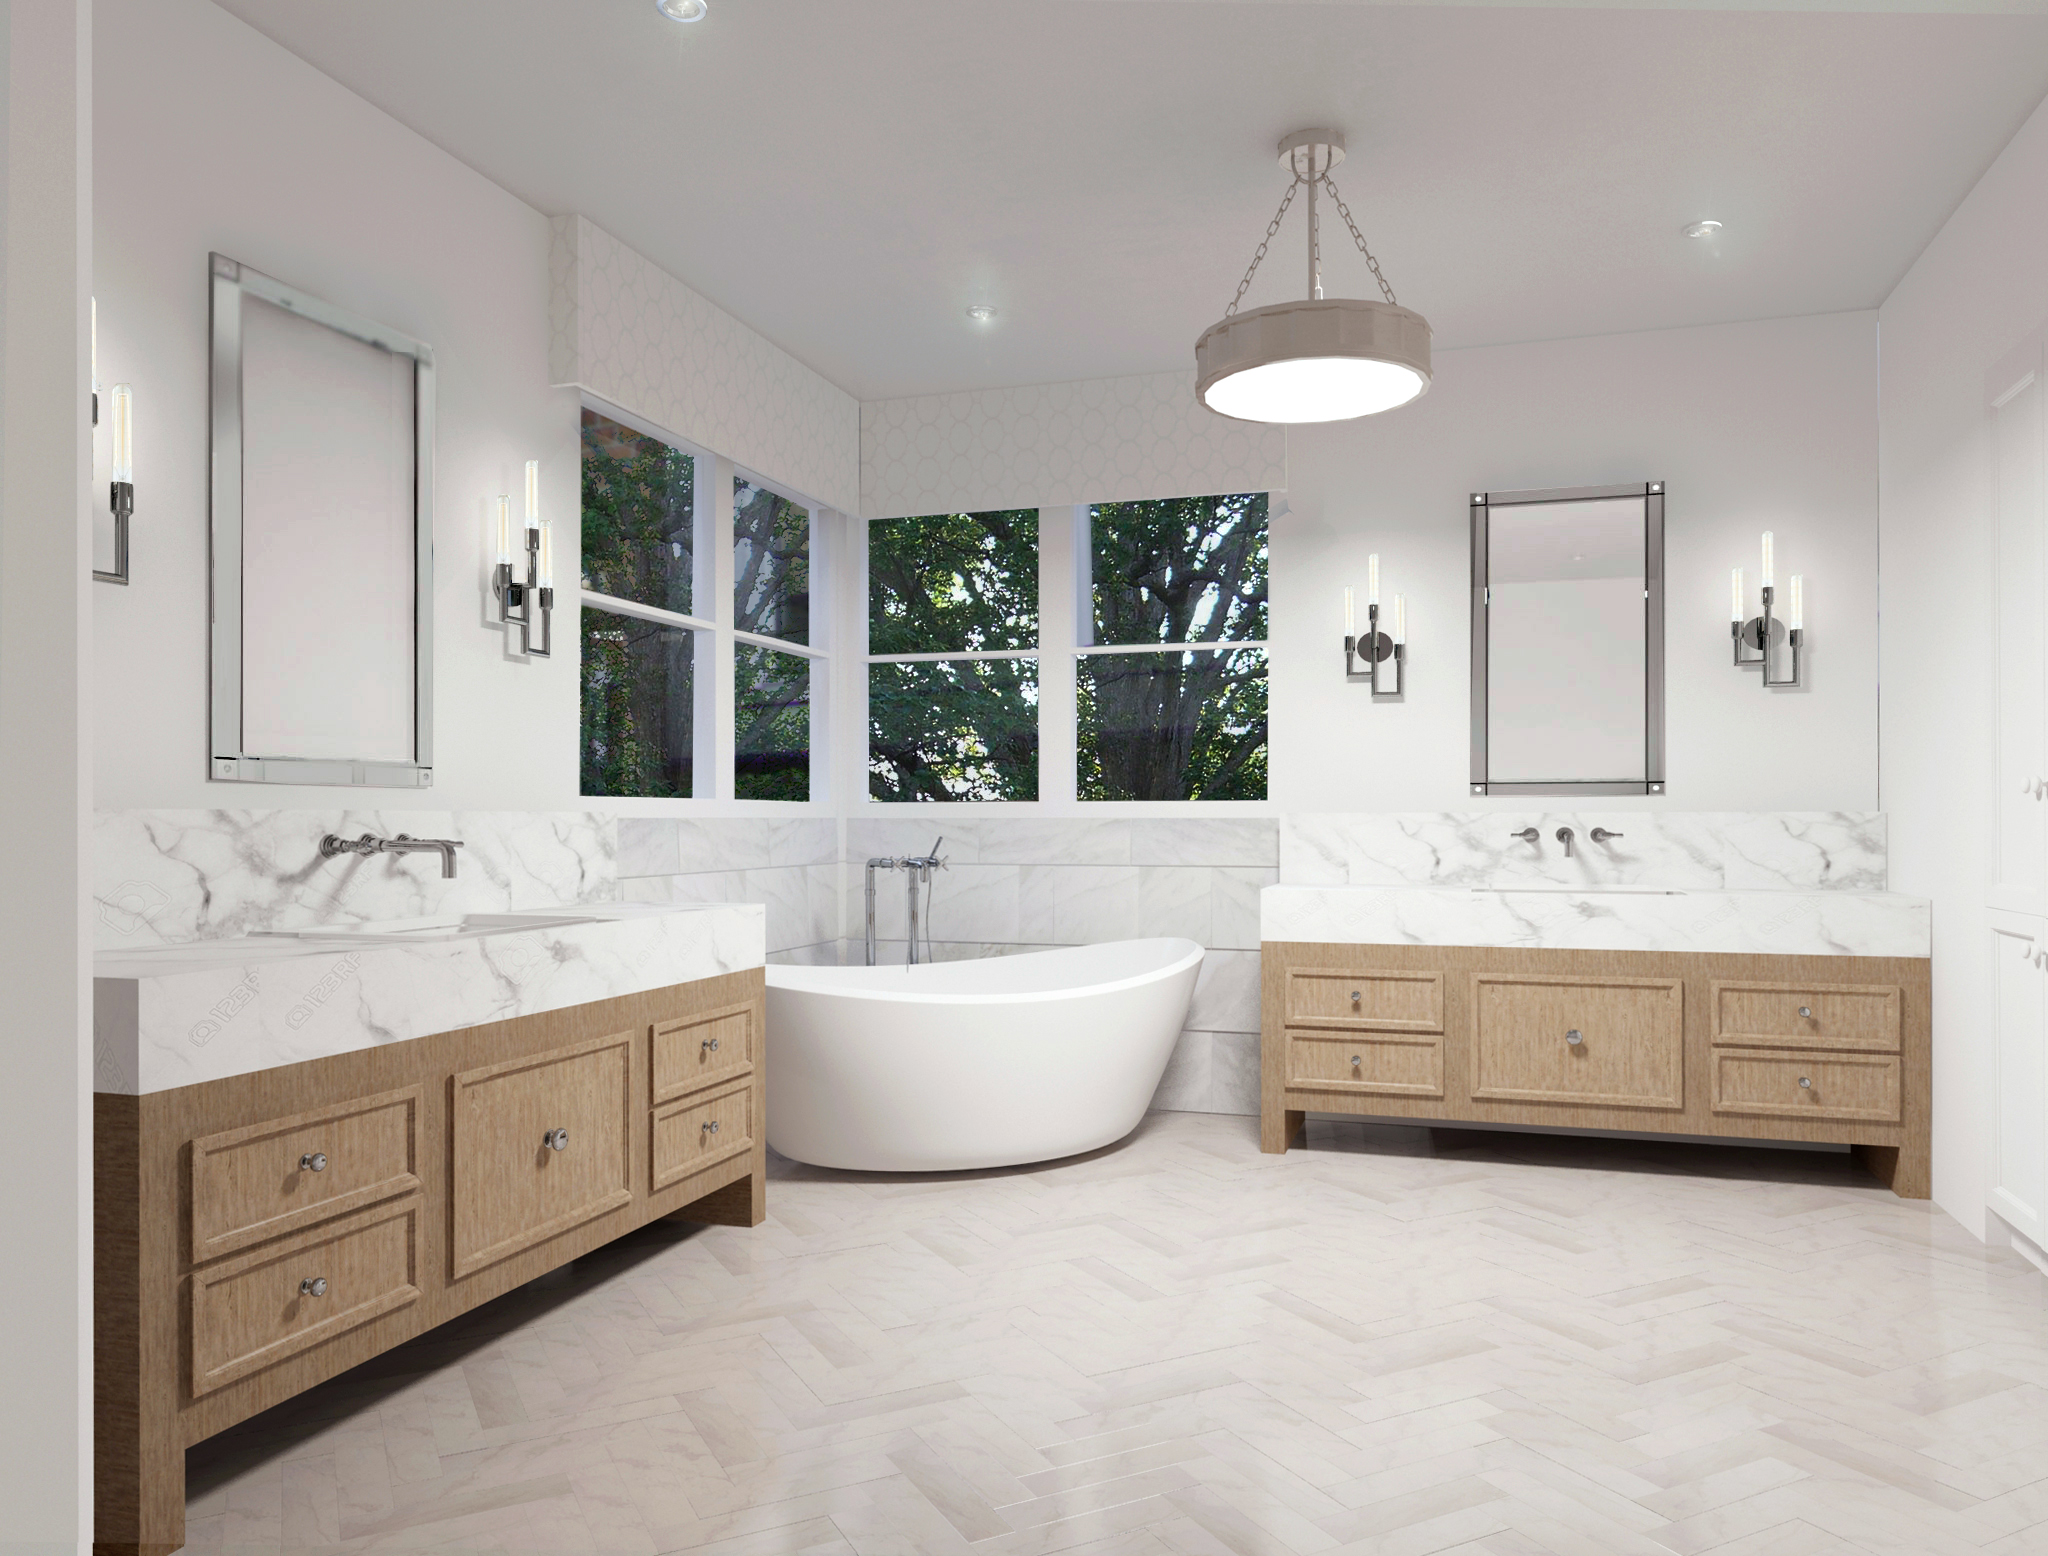 Master bathroom design with white marble look tile and wood vanities | Designer: Carla Aston, Rendering: Shebin Poothery #masterbathroom #whitemarblebath